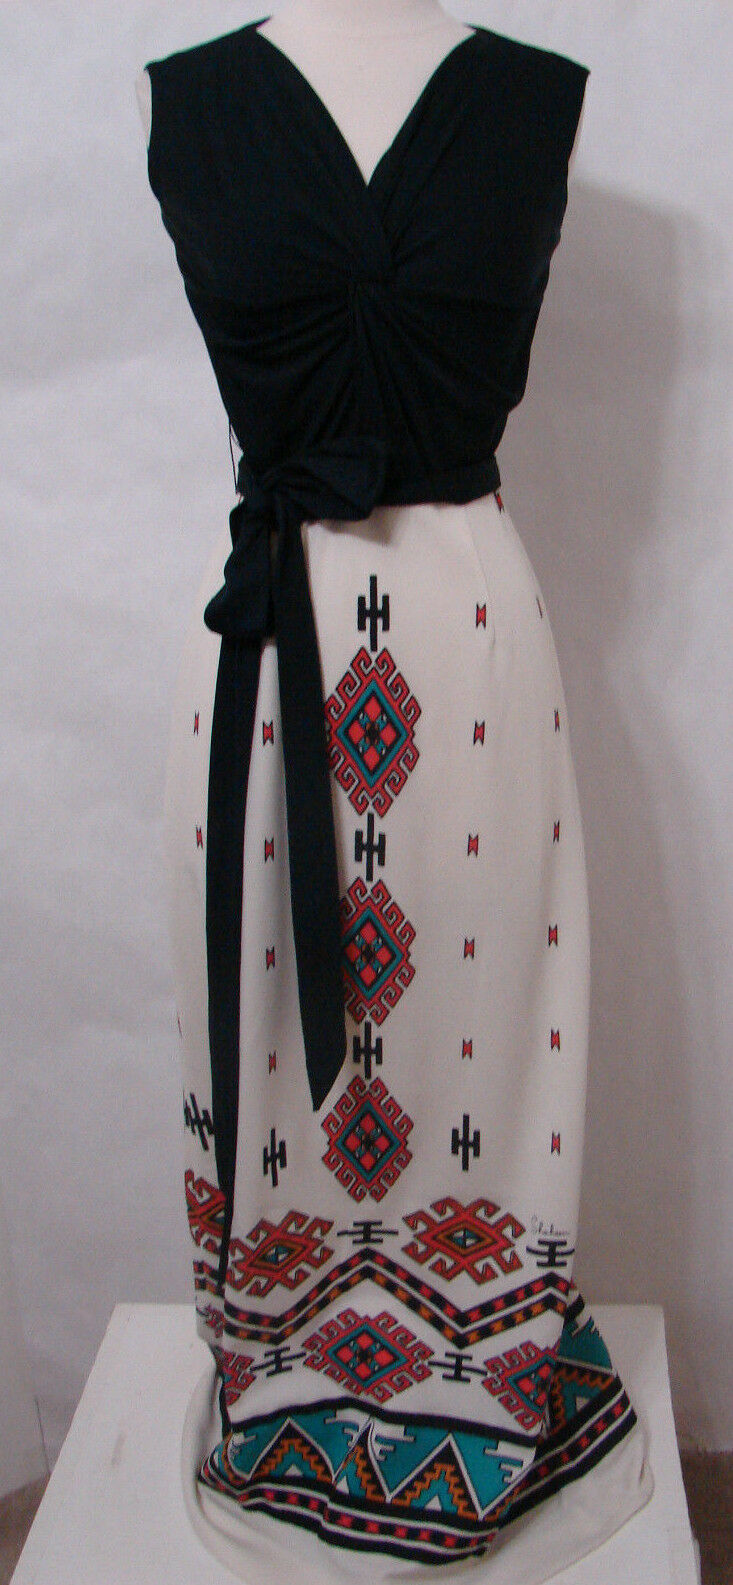 ALFRED SHAHEEN Maxi Dress Rare Vintage 60's 70's Southwest Signed Painted Print